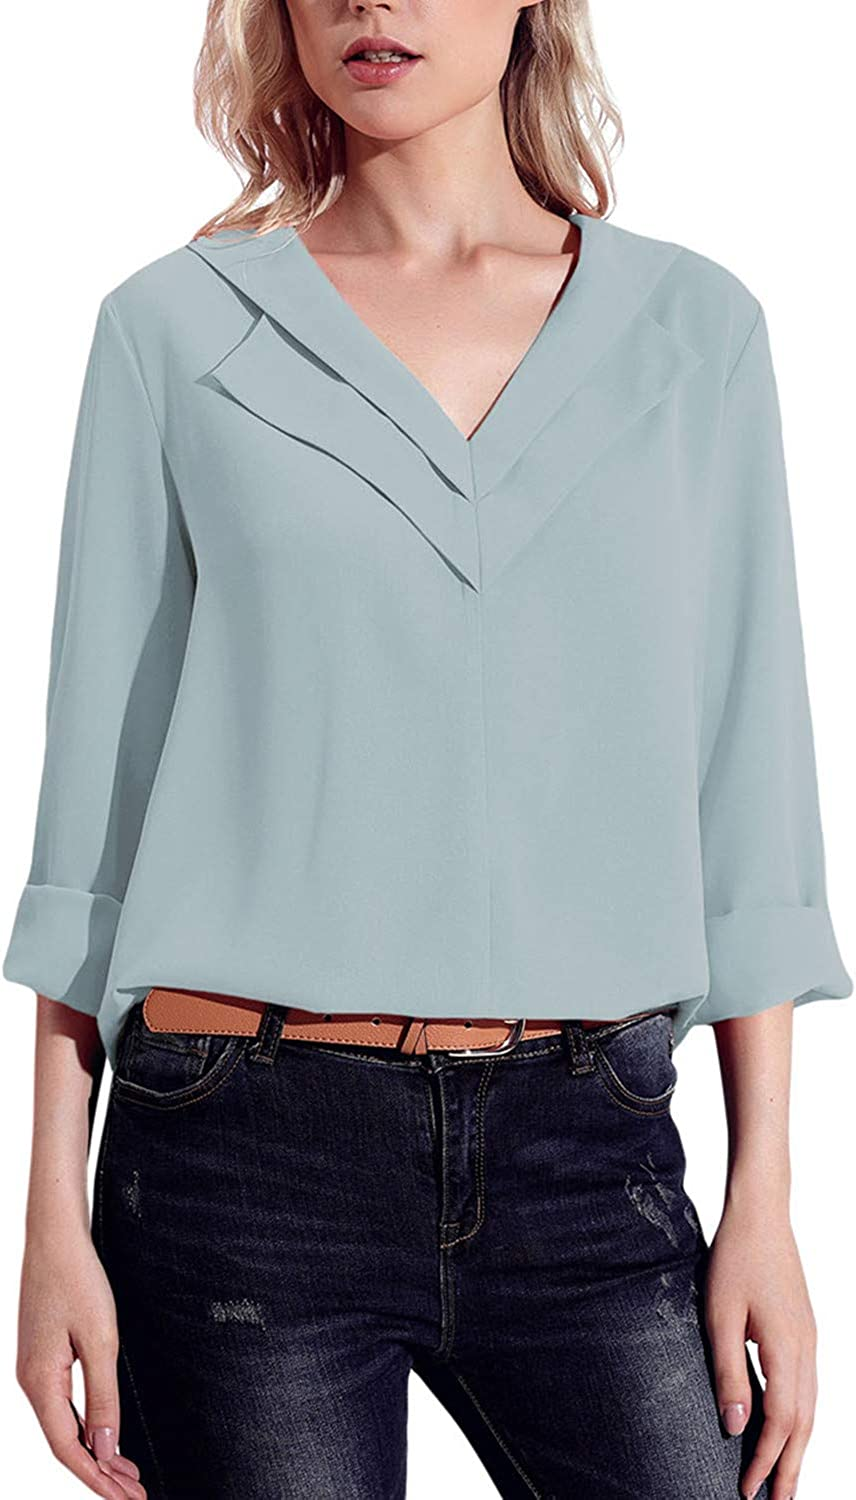 GOSOPIN Womens Chiffon Blouses V Neck Long Roll Sleeve Tops Casual Solid Color Tees